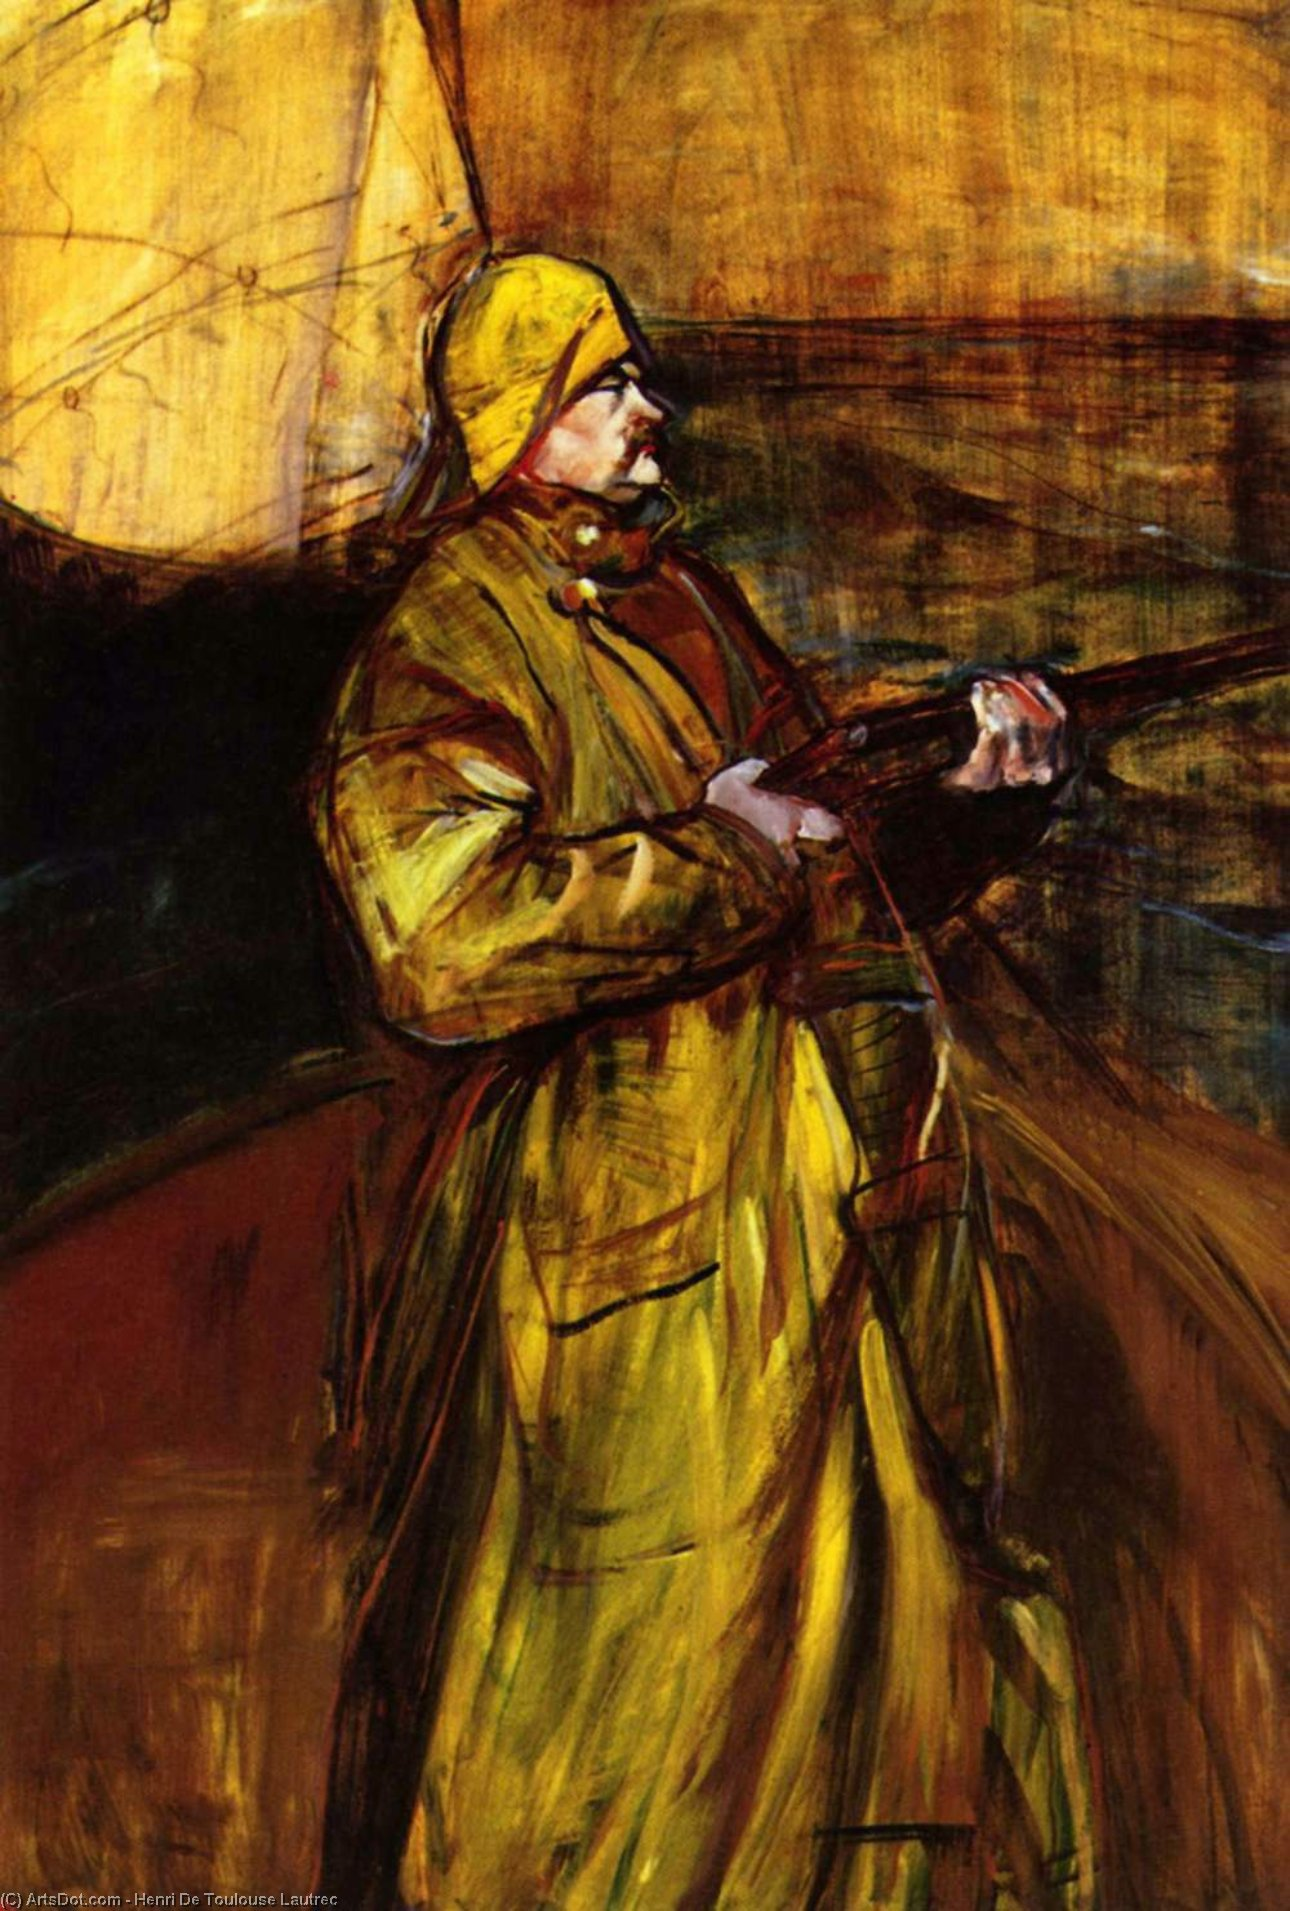 Maurice Joyant In A Summer Bay, Oil by Henri De Toulouse Lautrec (1864-1901, France)